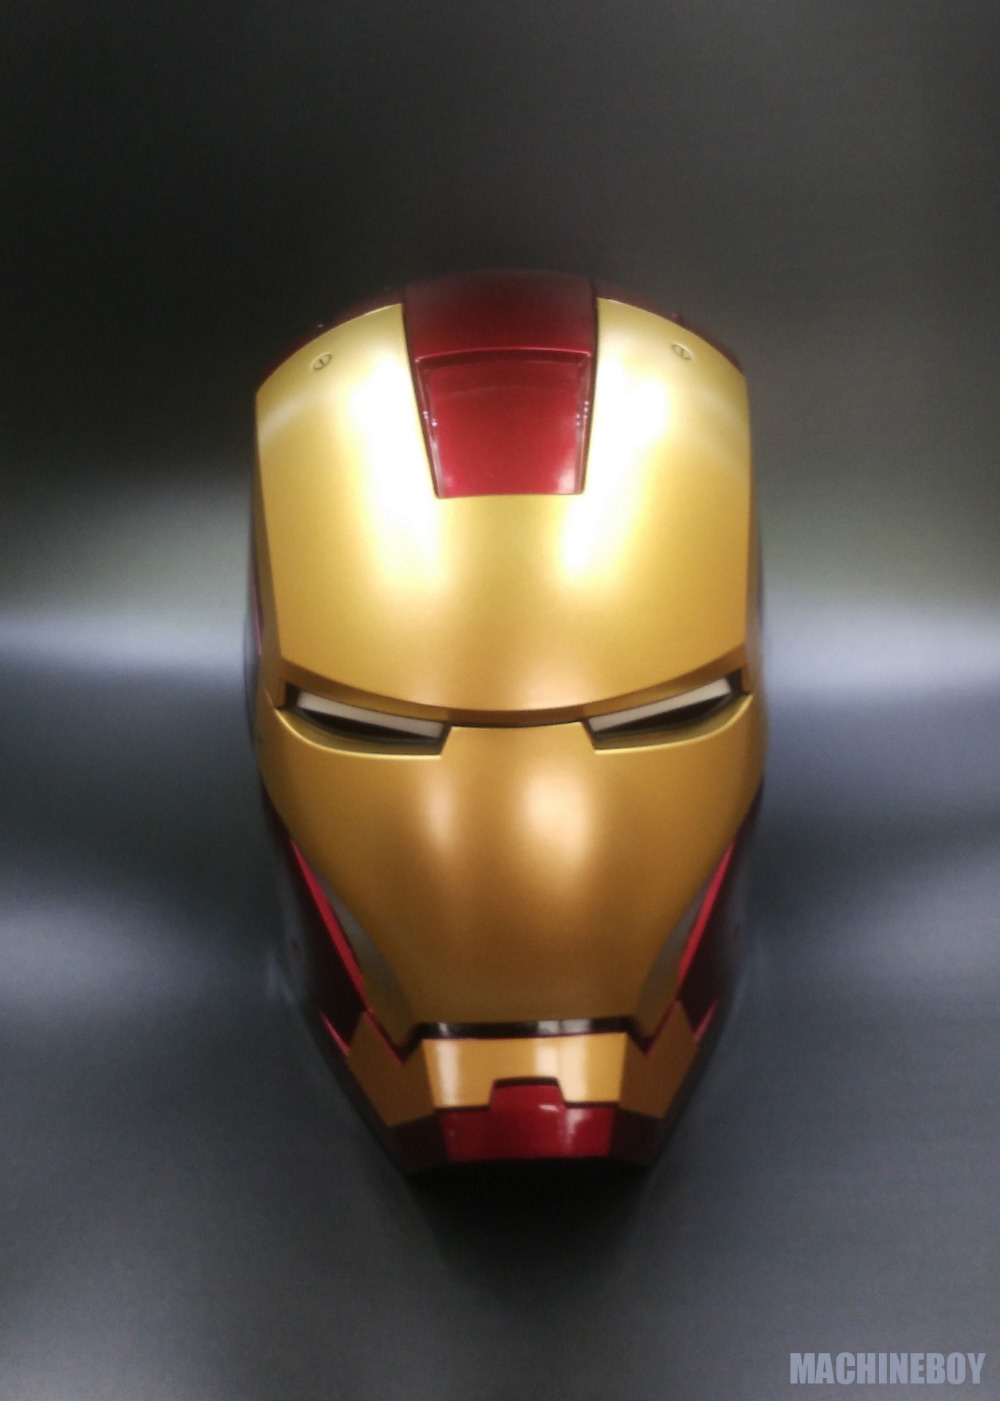 1:1 Wearable Iron Man MK7 Helmet With Motorized Face Plate Collectible Toys Marvel Gifts